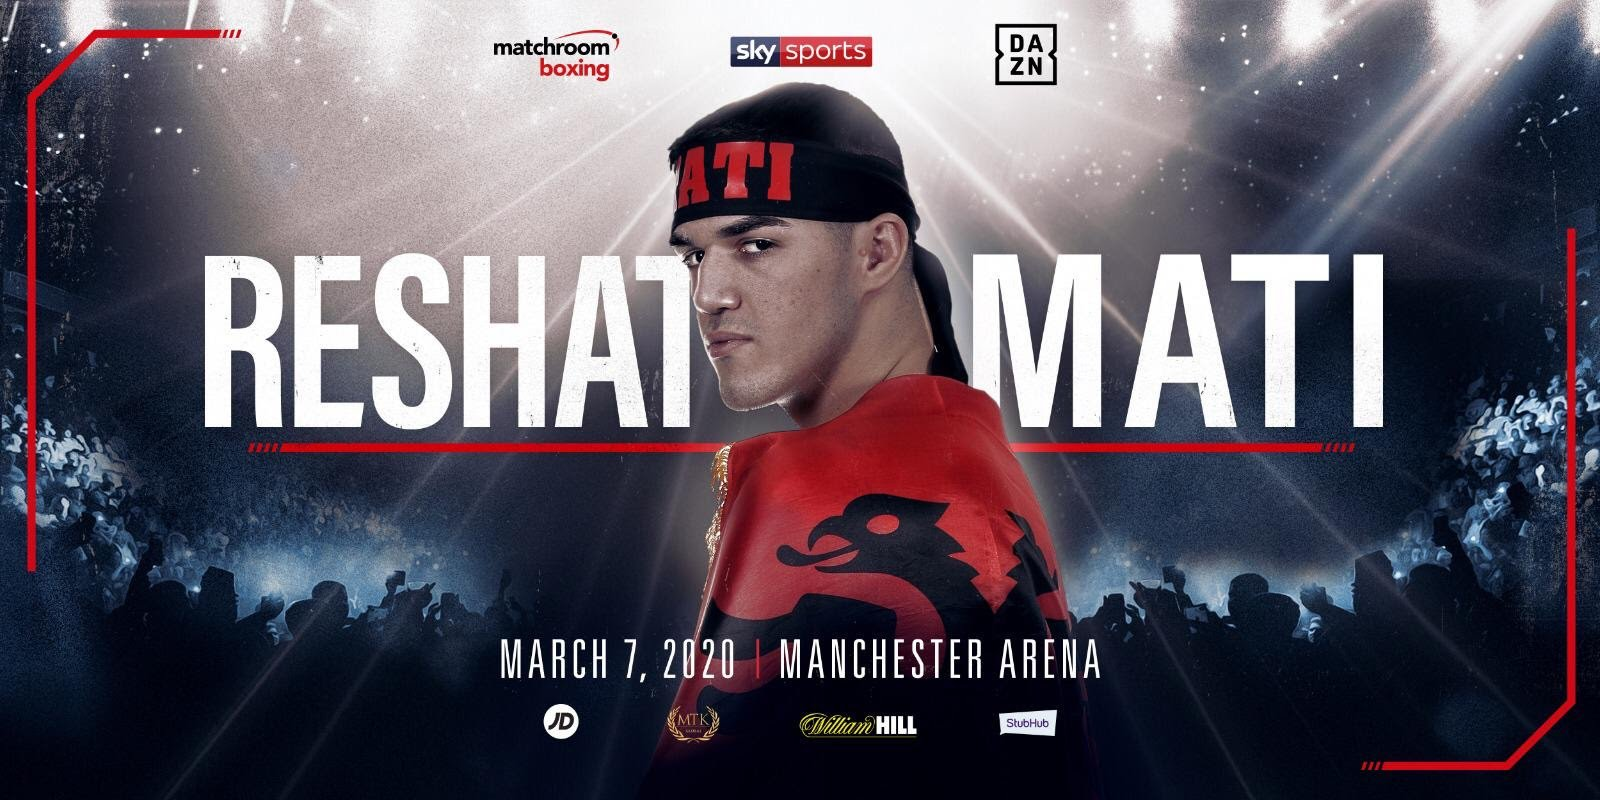 Jono Carroll - Rising Welterweight starlet Reshat Mati will make his UK debut on the undercard of Scott Quigg vs. Jono Carroll at Manchester Arena on Saturday March 7, live on Sky Sports in the UK and DAZN in the US.